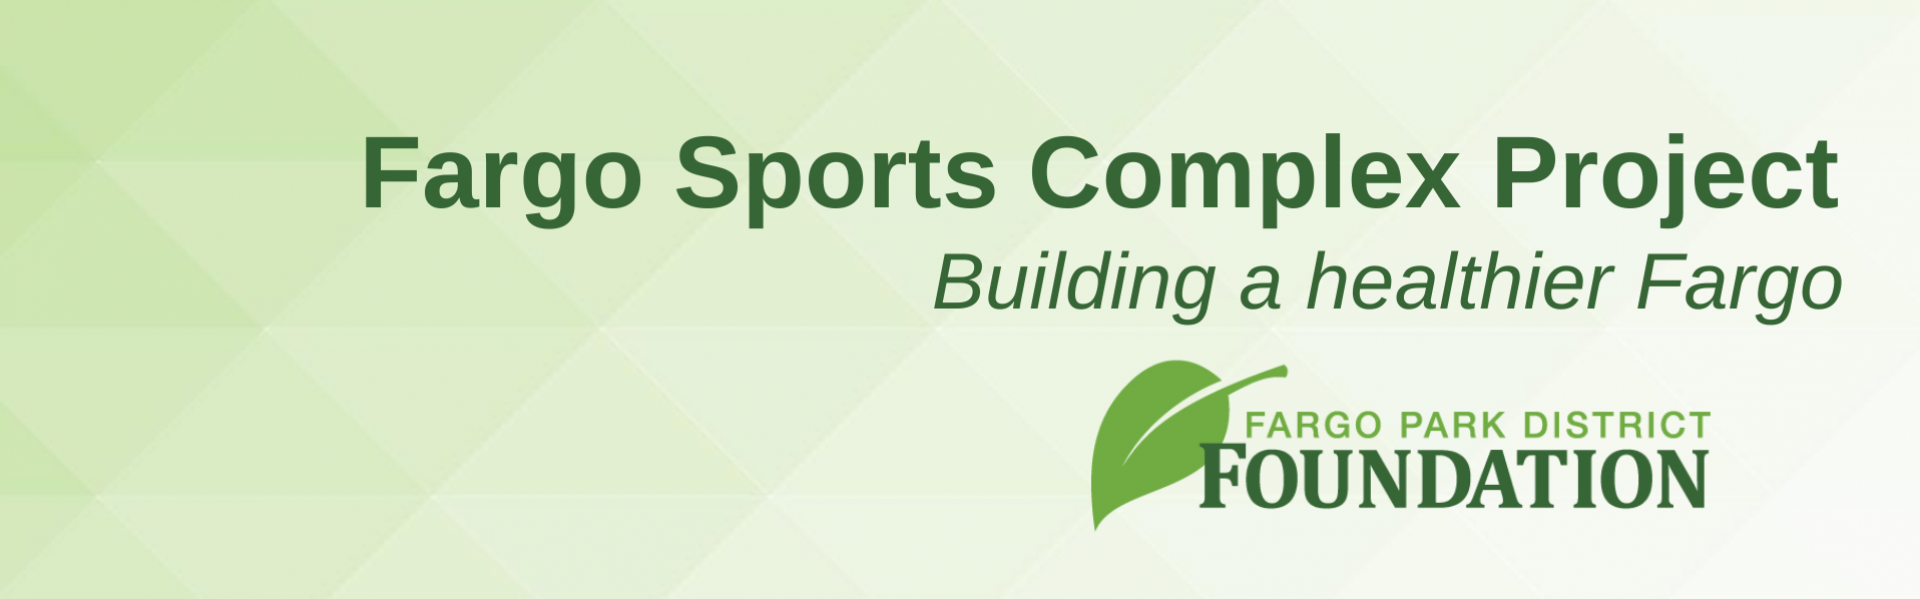 This image shows a graphic of the Fargo Sports Complex Foundation project.